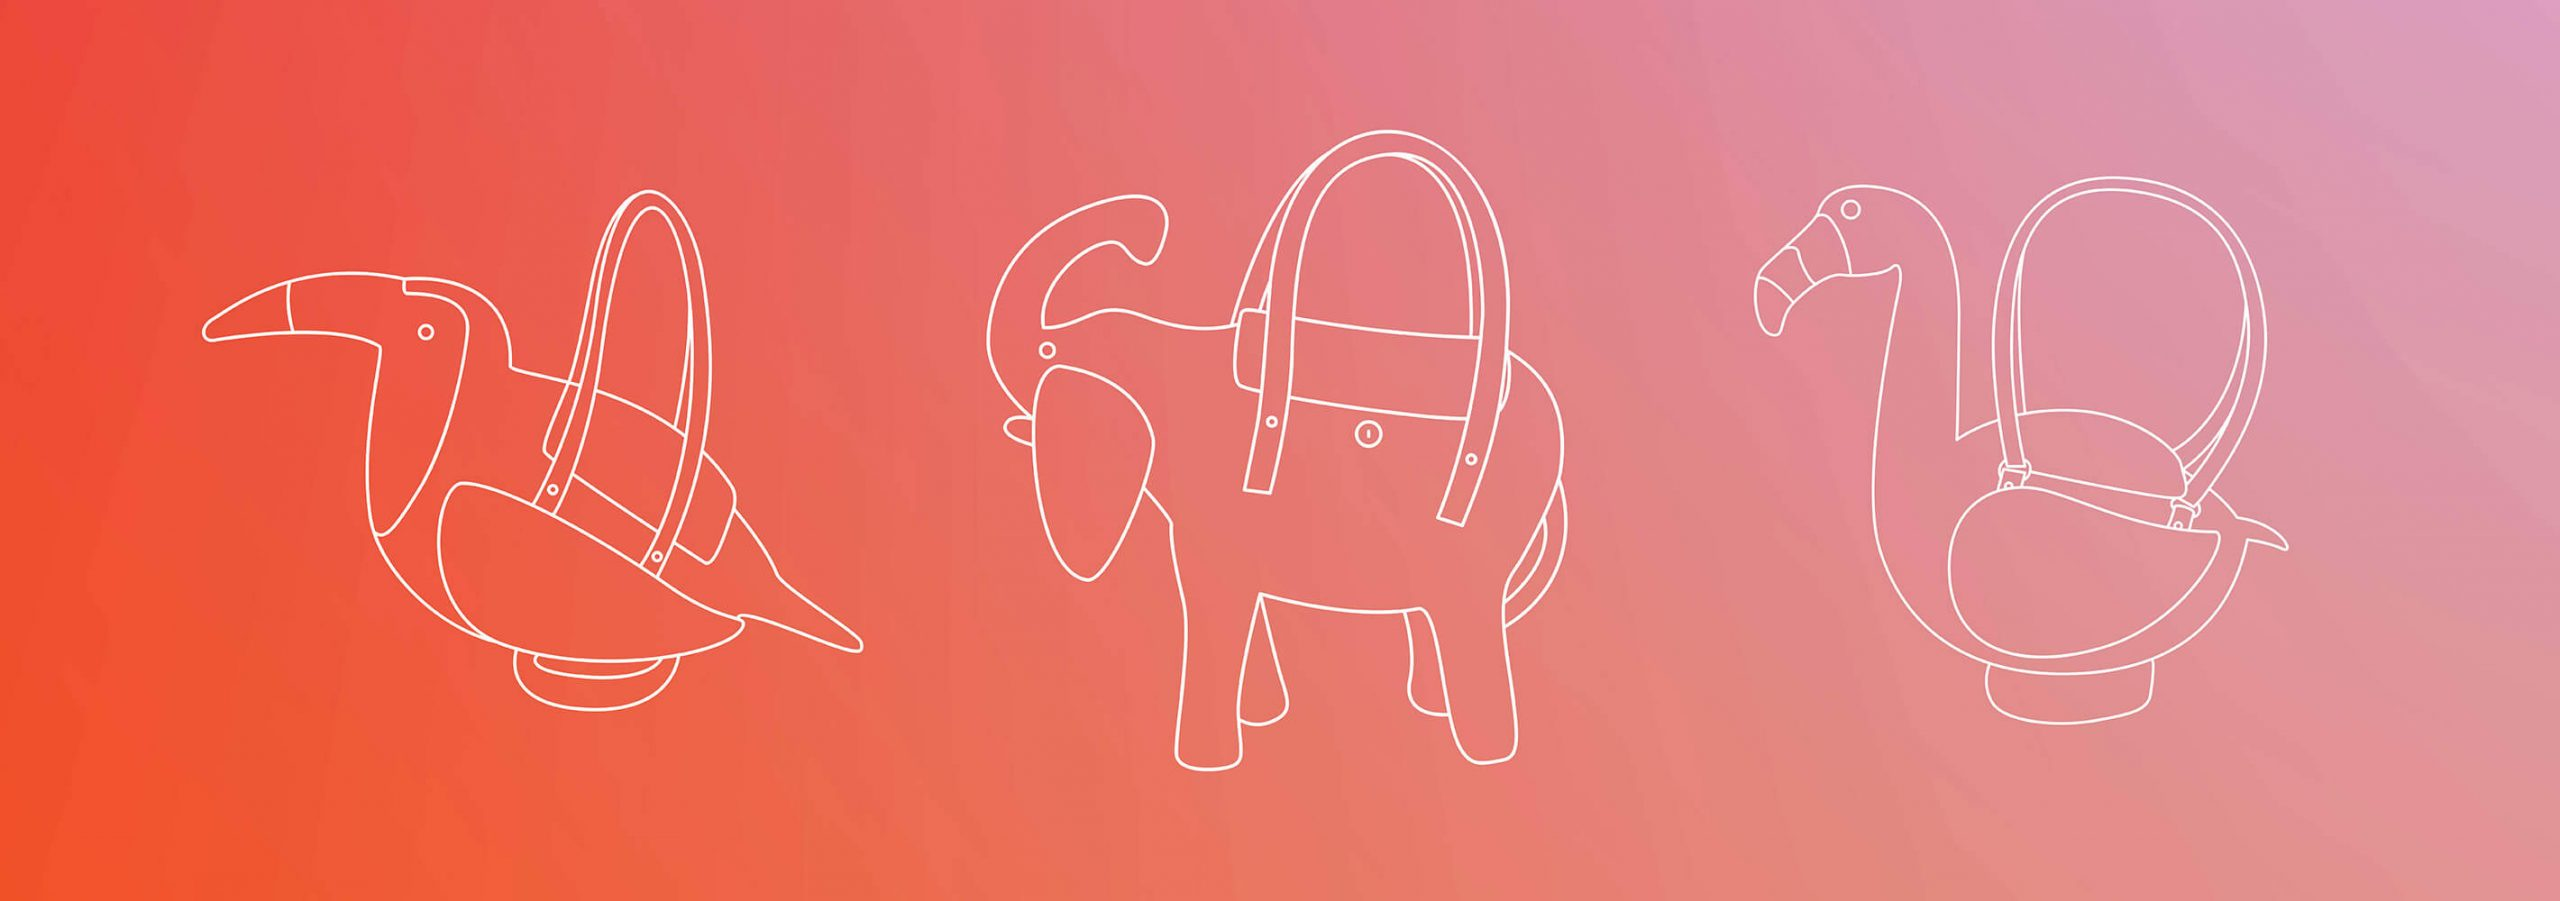 Tropical gradient background with line drawings of the toucan, elephant and flamingo shaped handbags.